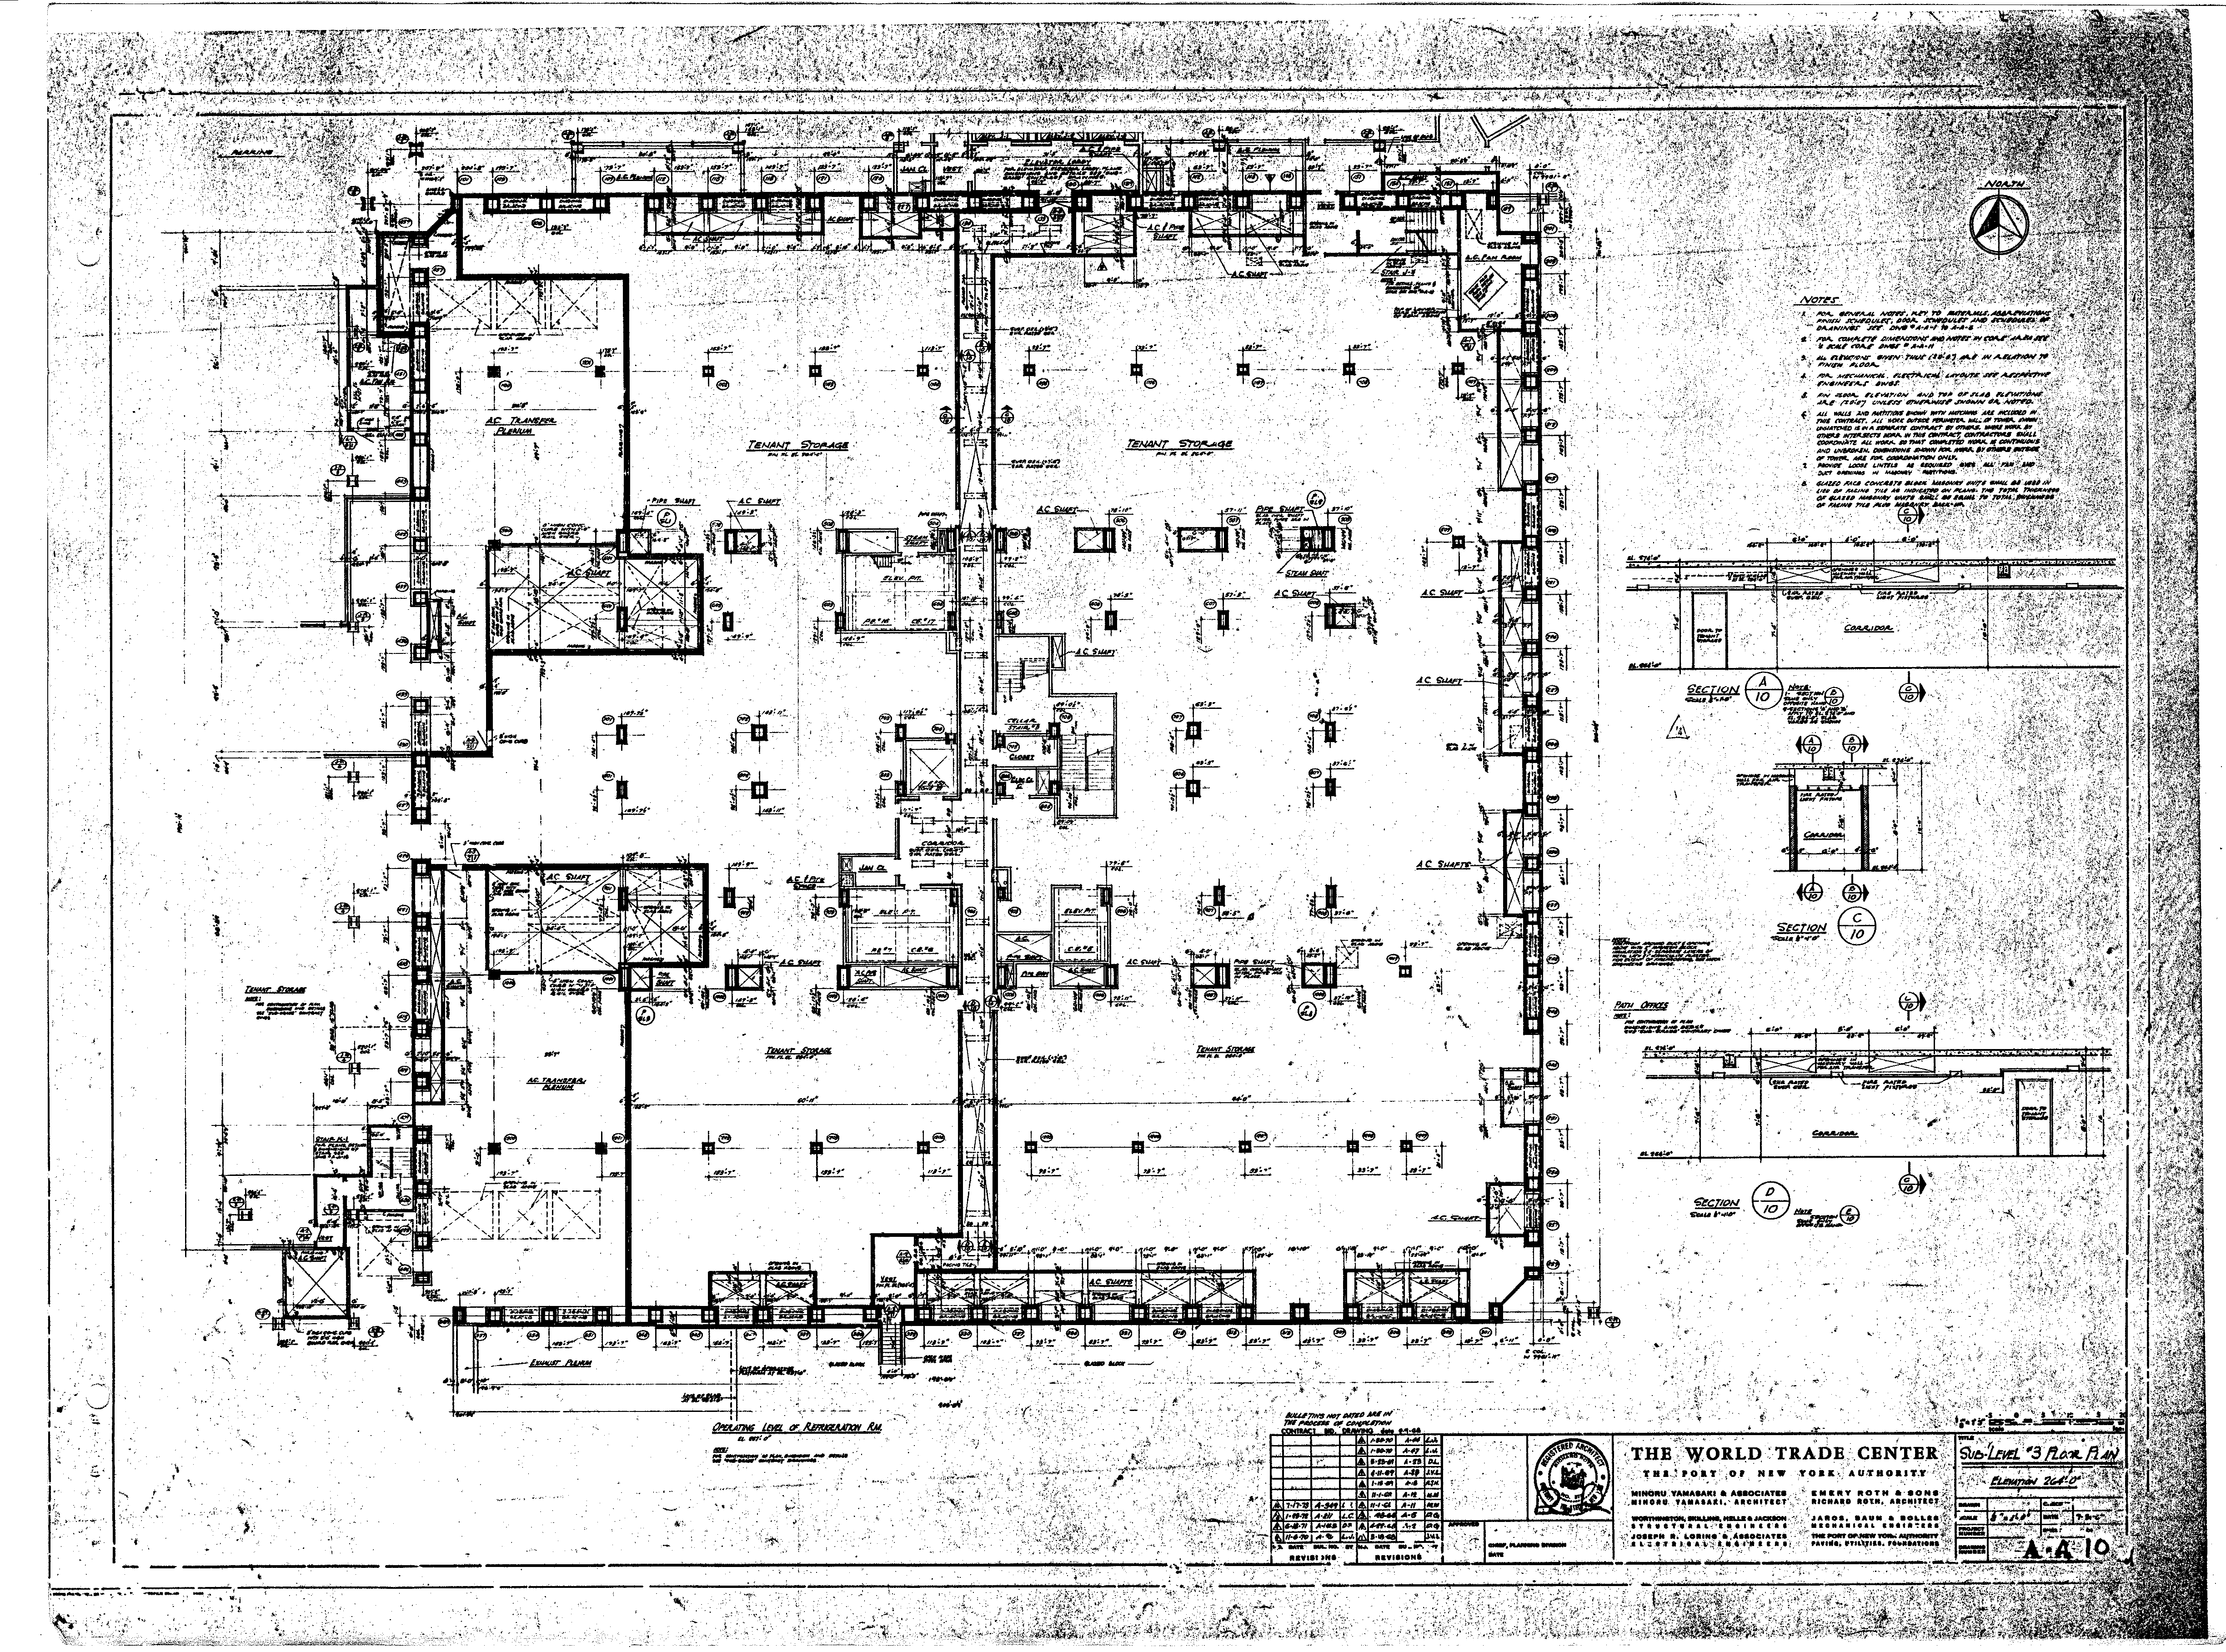 Architectural drawings floor plans Drawn Architects Engineers For 911 Truth North Tower Blueprints